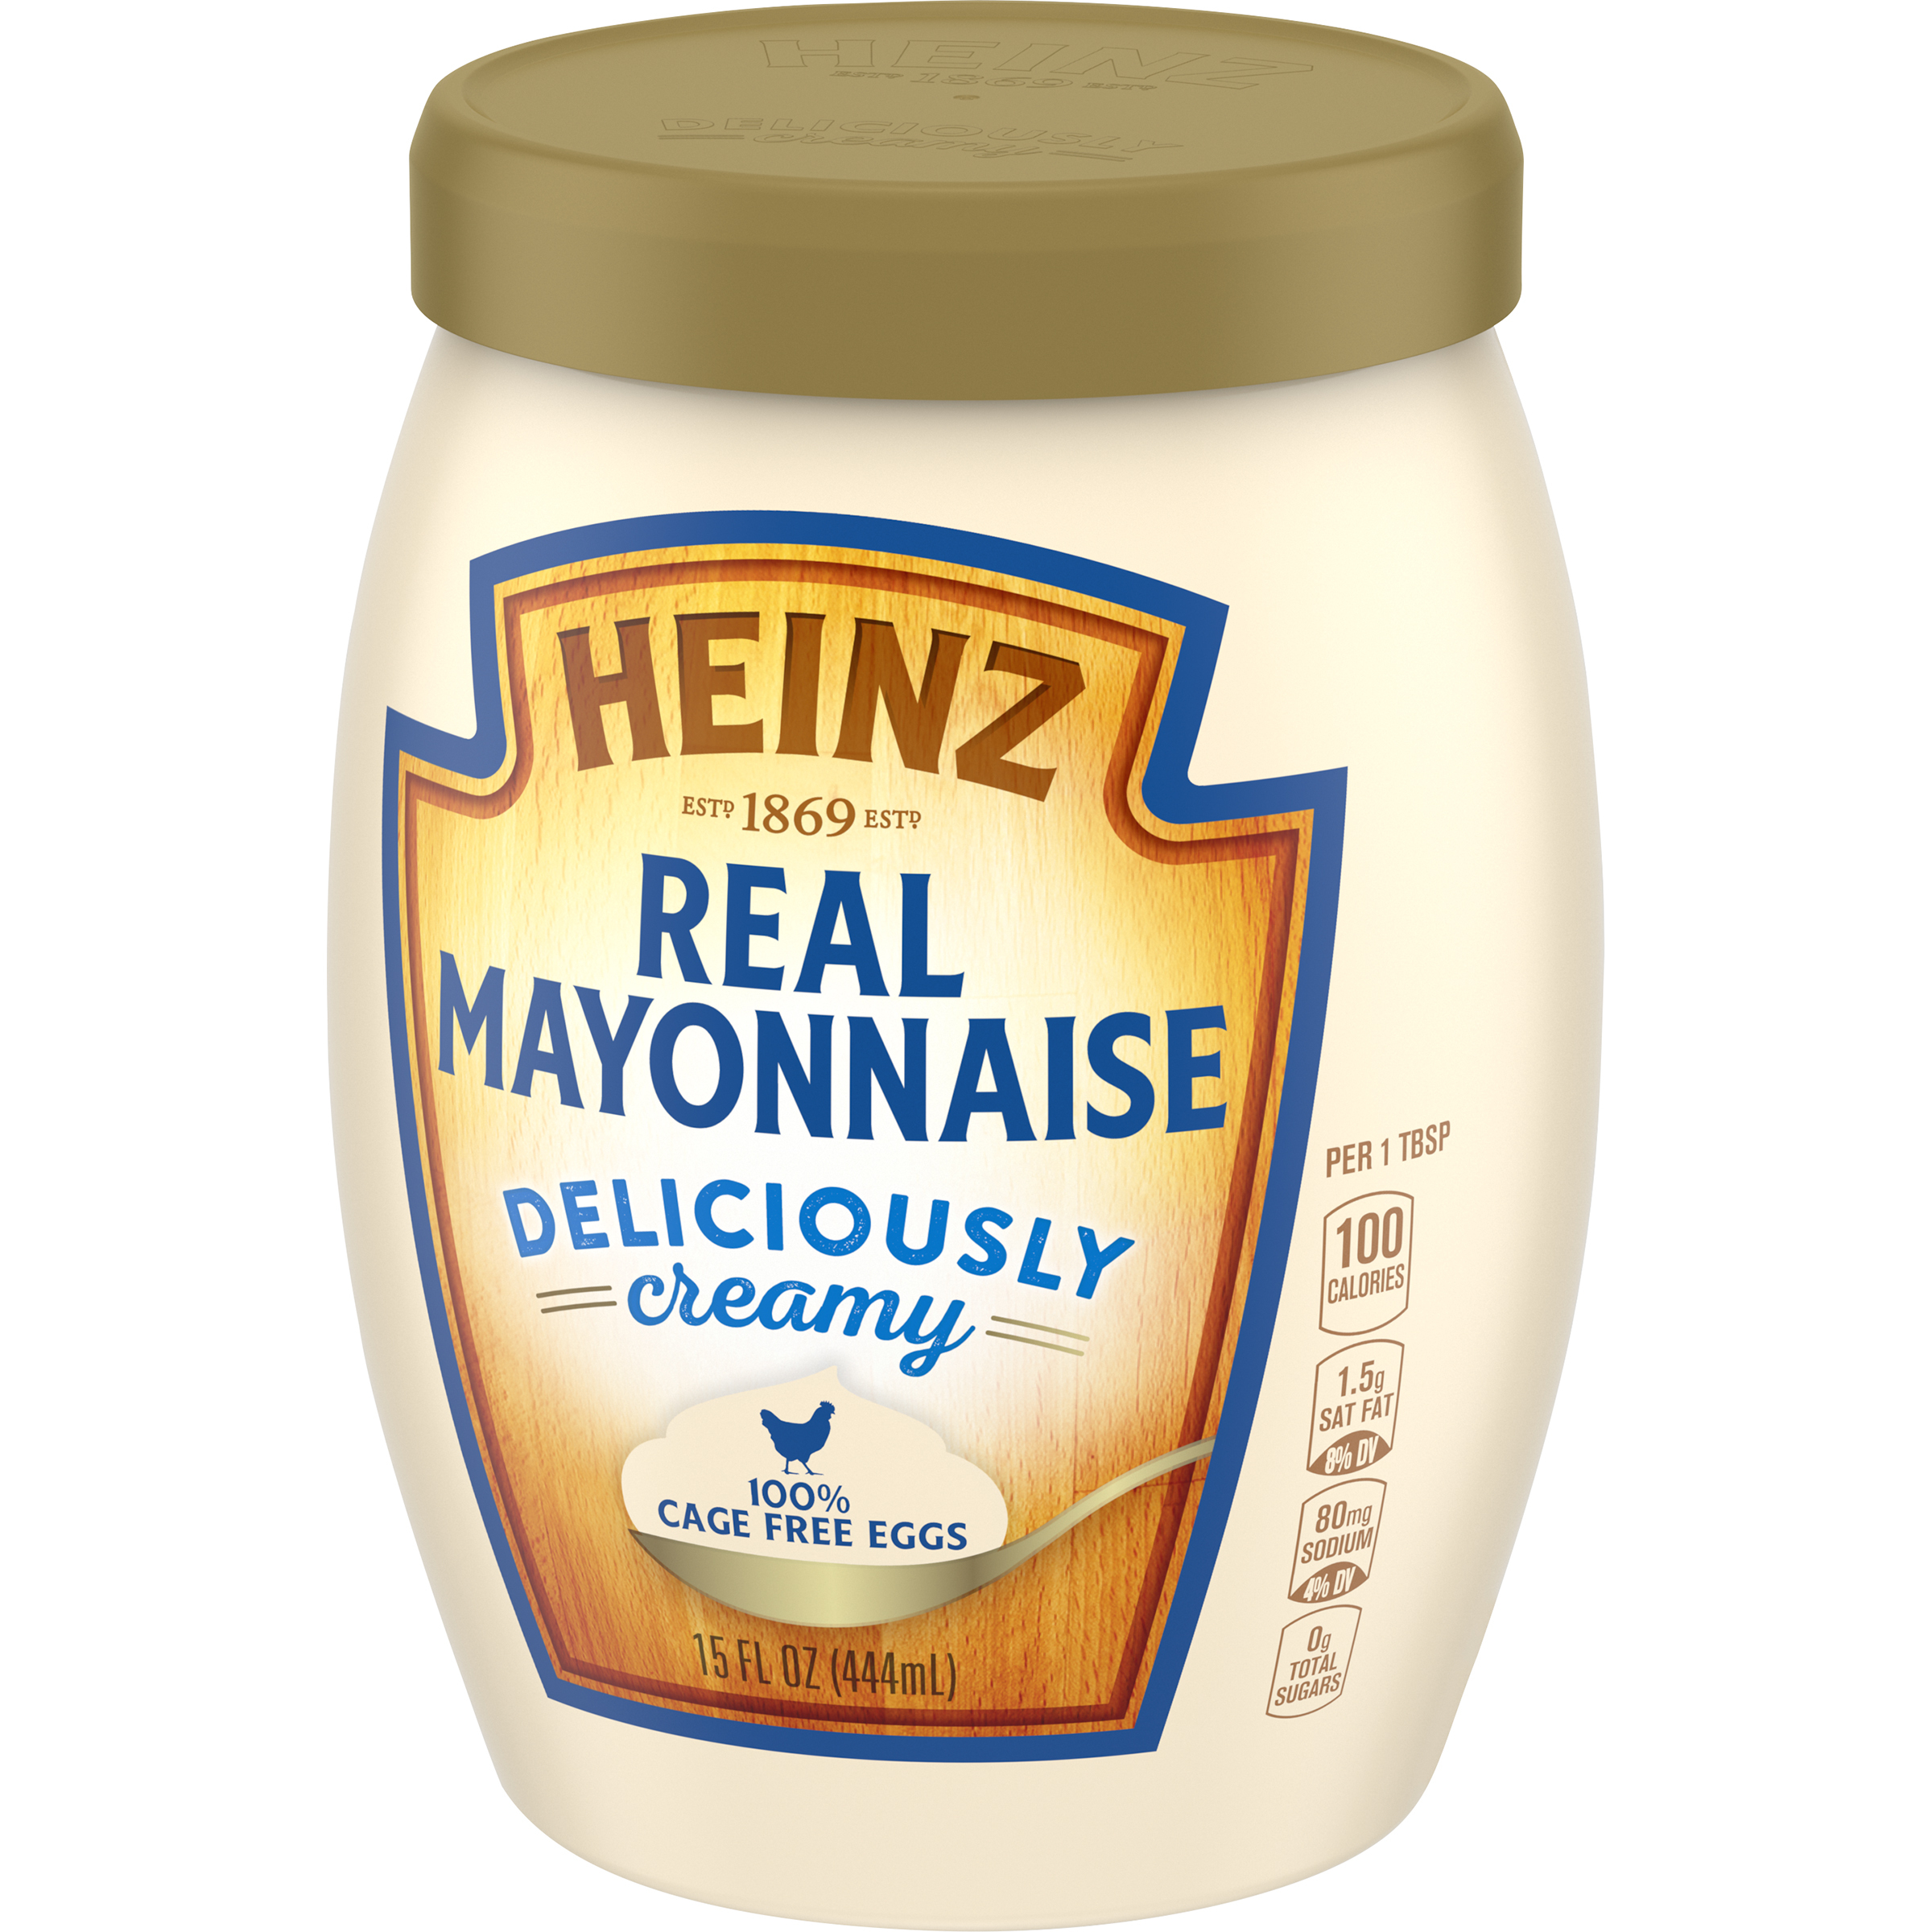 Heinz Real Mayonnaise - 100% Cage Free Eggs (15 oz.)